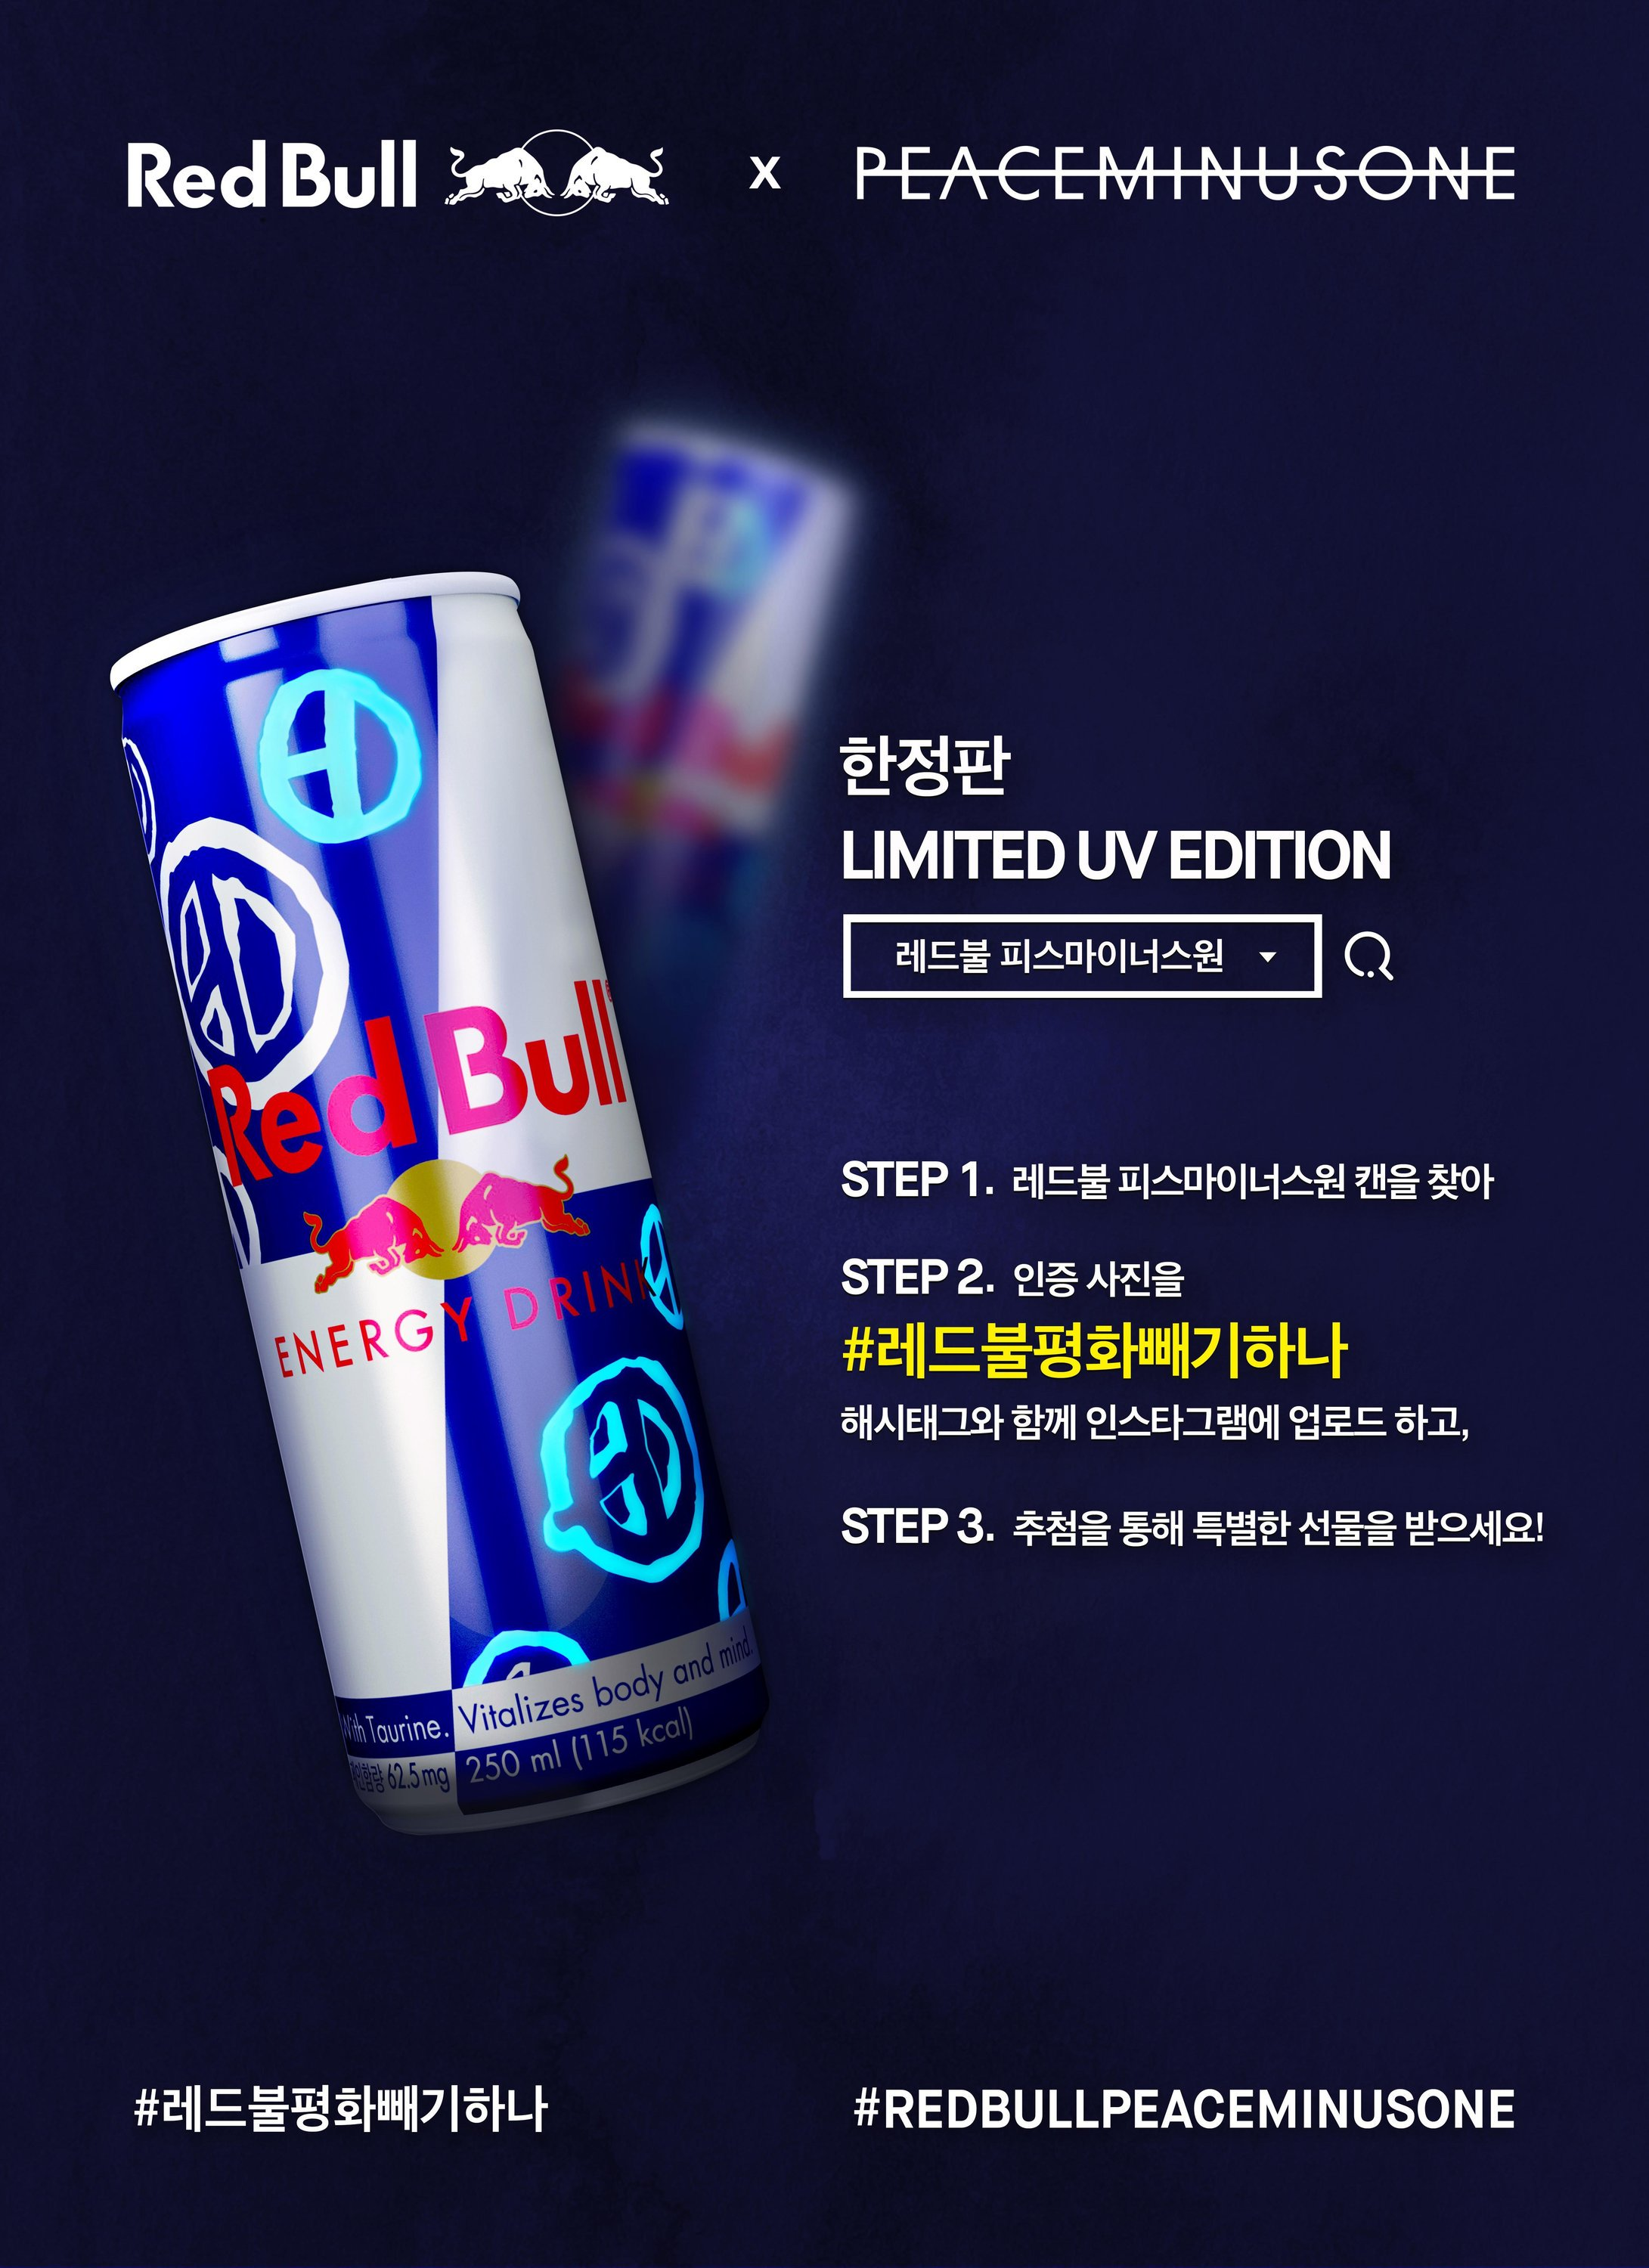 Video Photos G Dragons Peaceminusone X Red Bull Special Edition